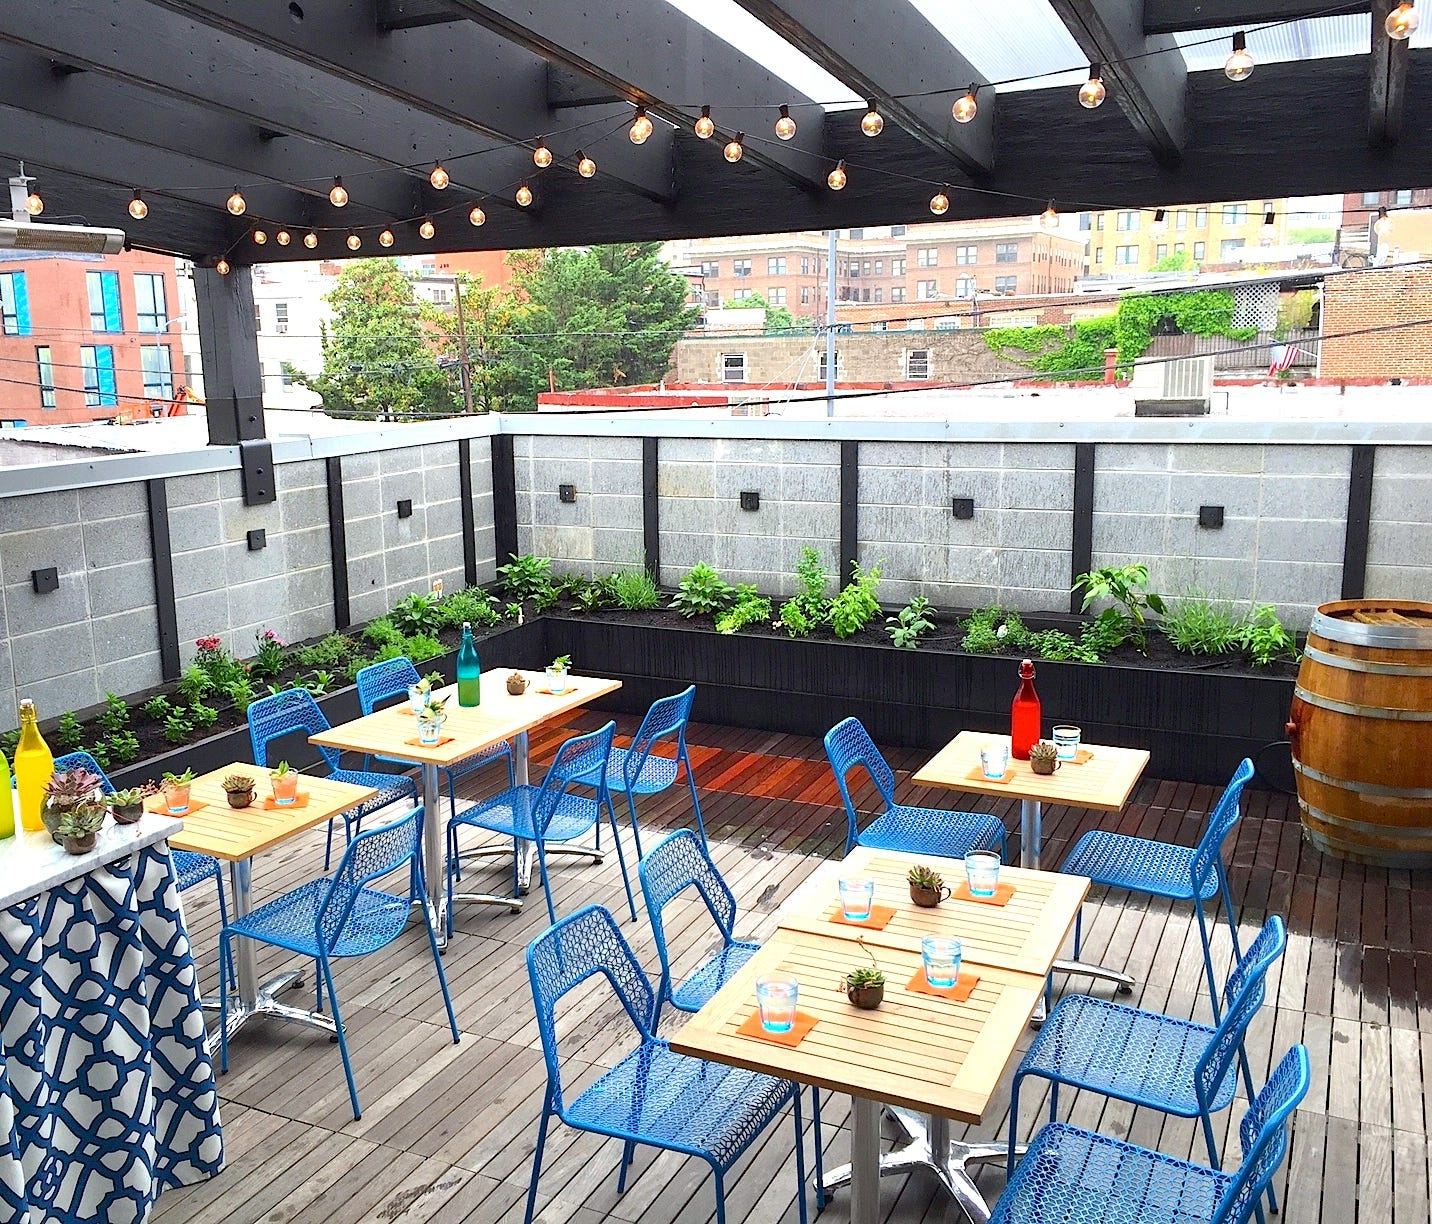 In Washington, D.C., Columbia Room cocktail bar hosts a Punch Garden on its roof deck.